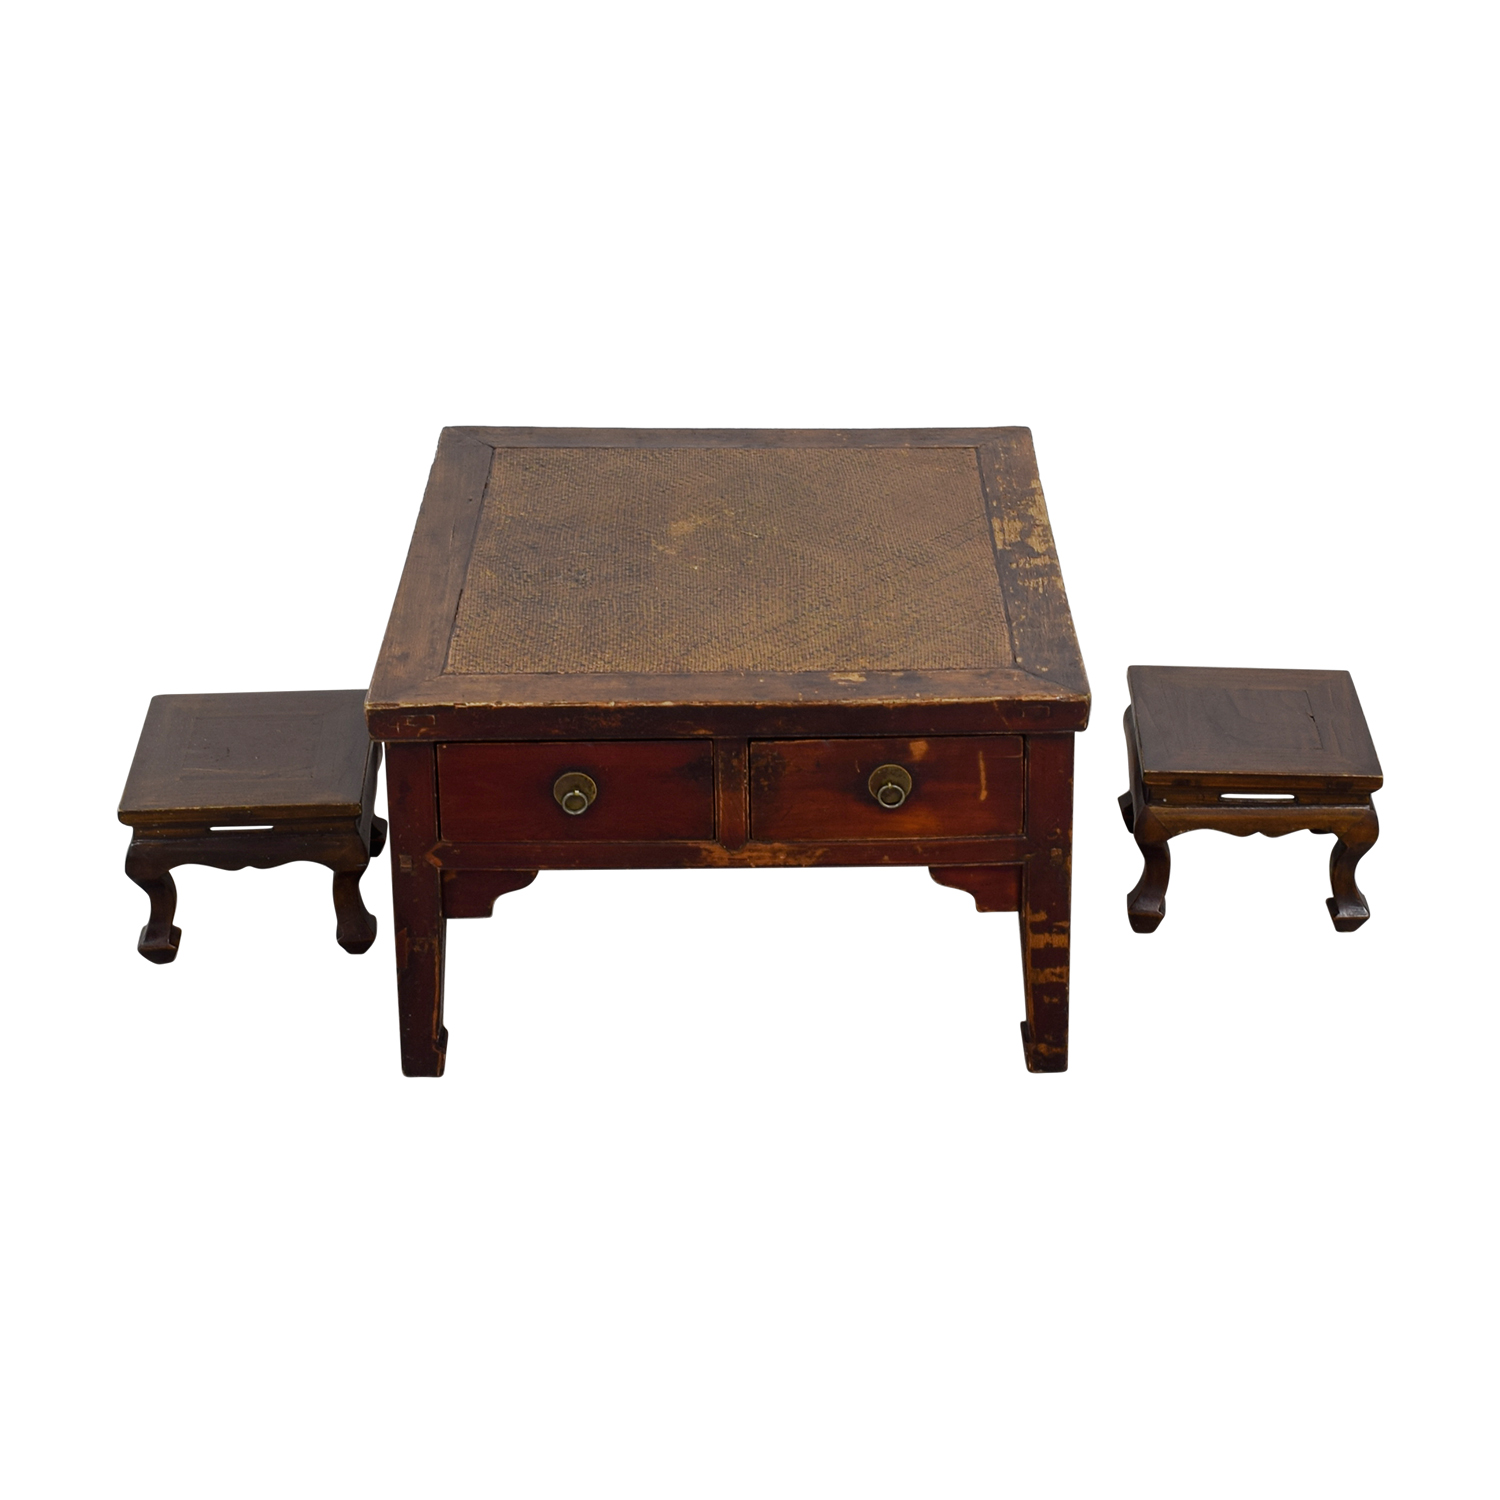 Antique Coffee Table with Two Stools sale